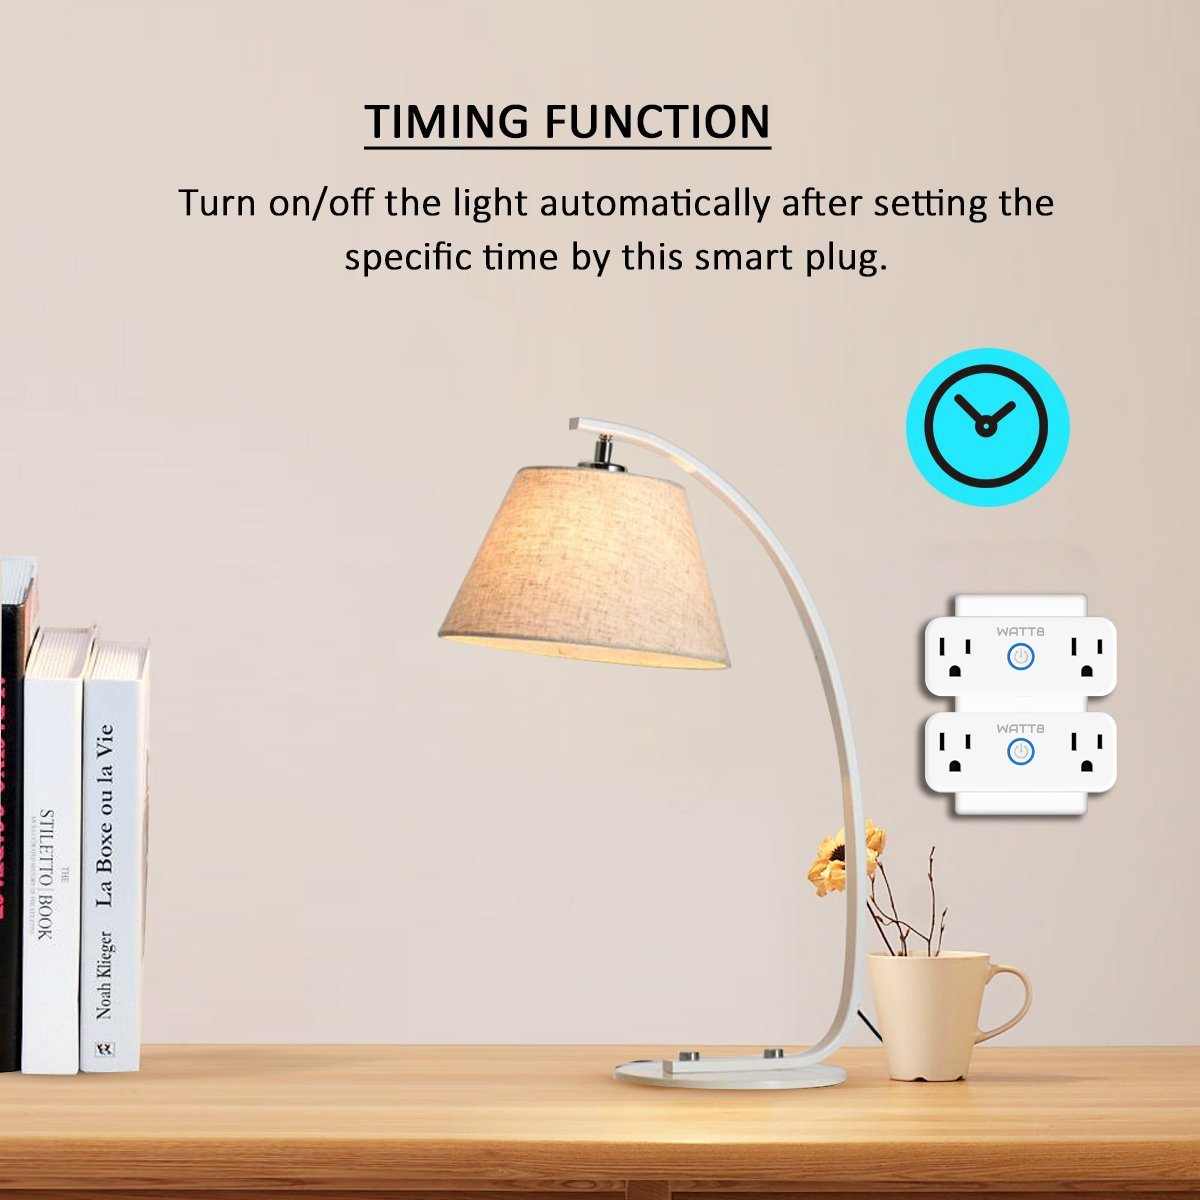 WATT8 Mini Wi-Fi Smart Plug, Dual Outlet, Works with Amazon Alexa and Google Assistant, No Hub Required, Control Your Appliances by Smart Phone and voice With Timing Function From Anywhere by WATT8 (Image #6)